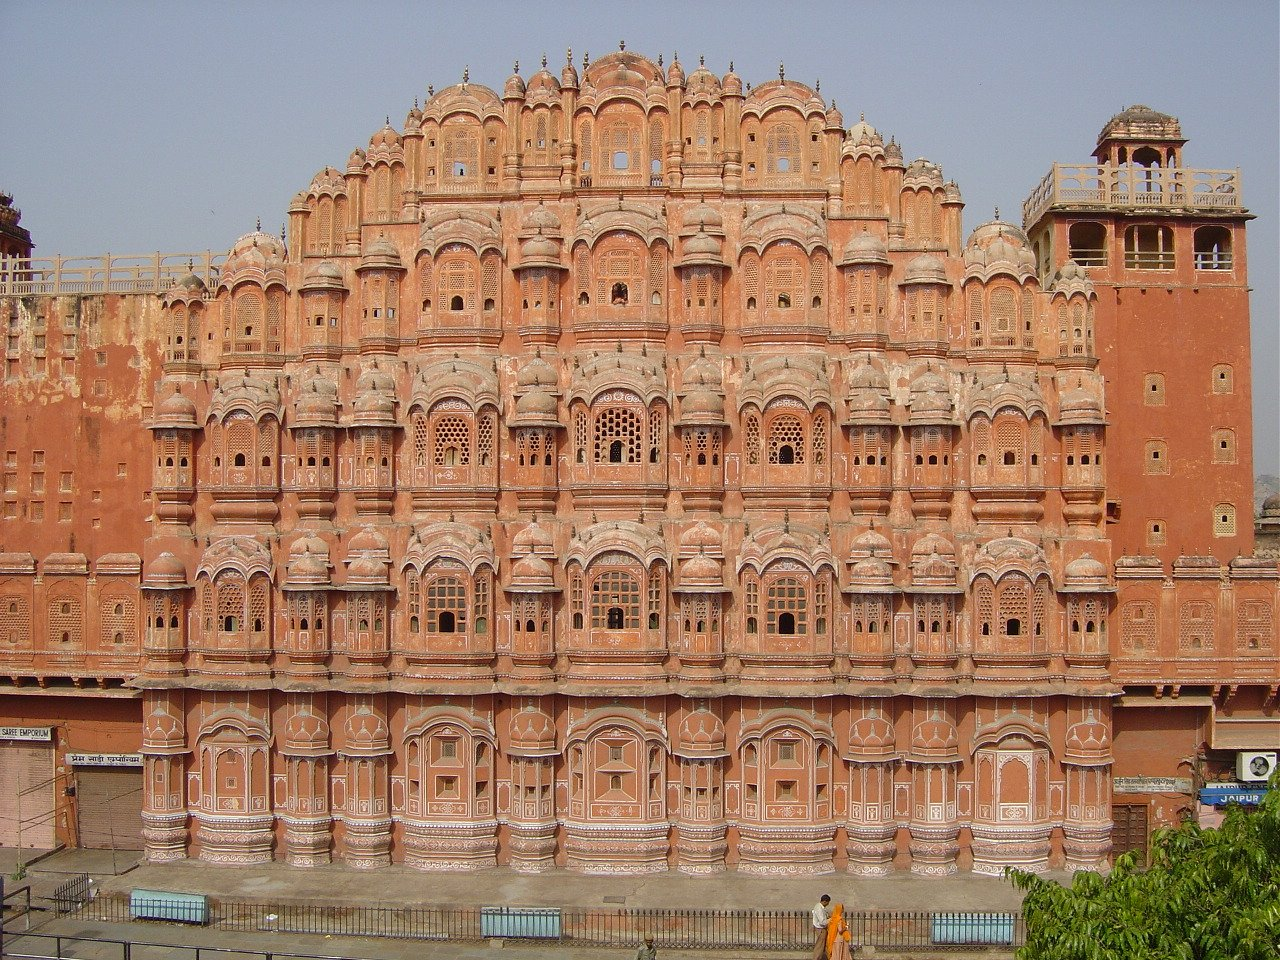 Rajasthan Tourist Places: Tourist attractions in Rajasthan